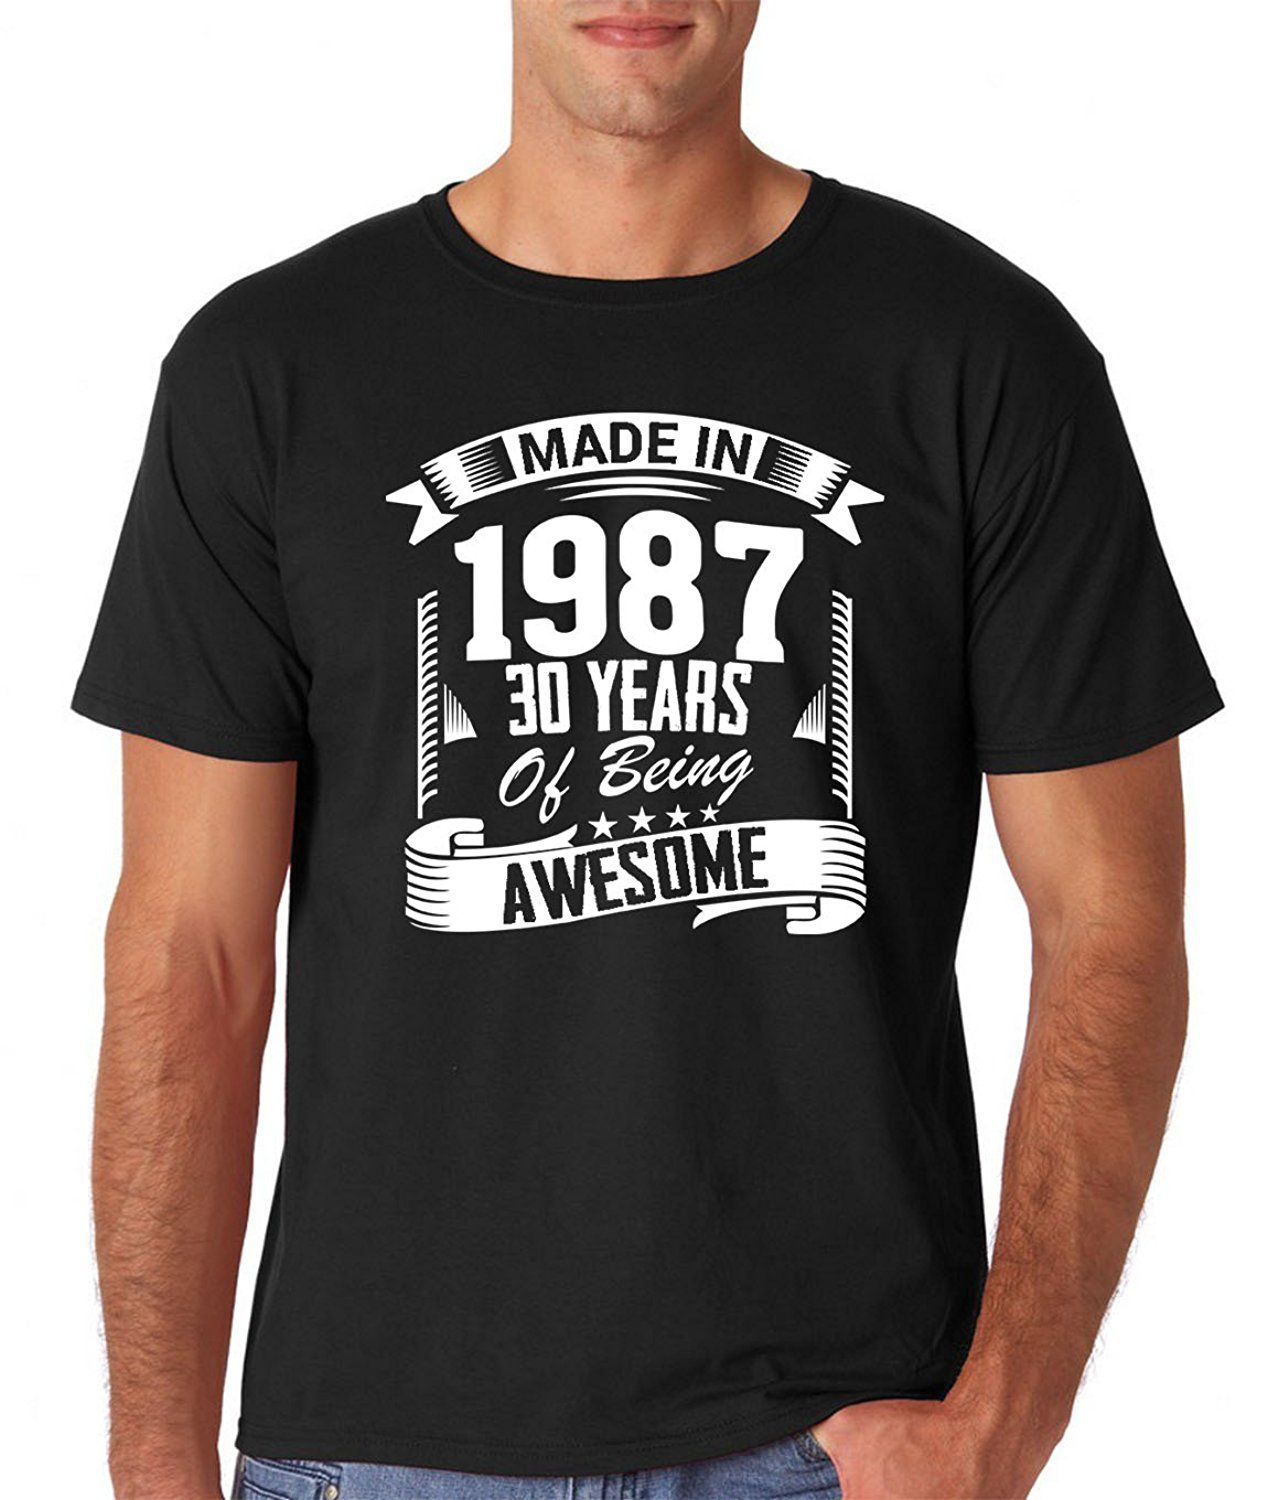 9cbf3eefb7a8 Hot Sell Fashion T-shirts Made In 1987 - 30 Years of Being Awesome ...